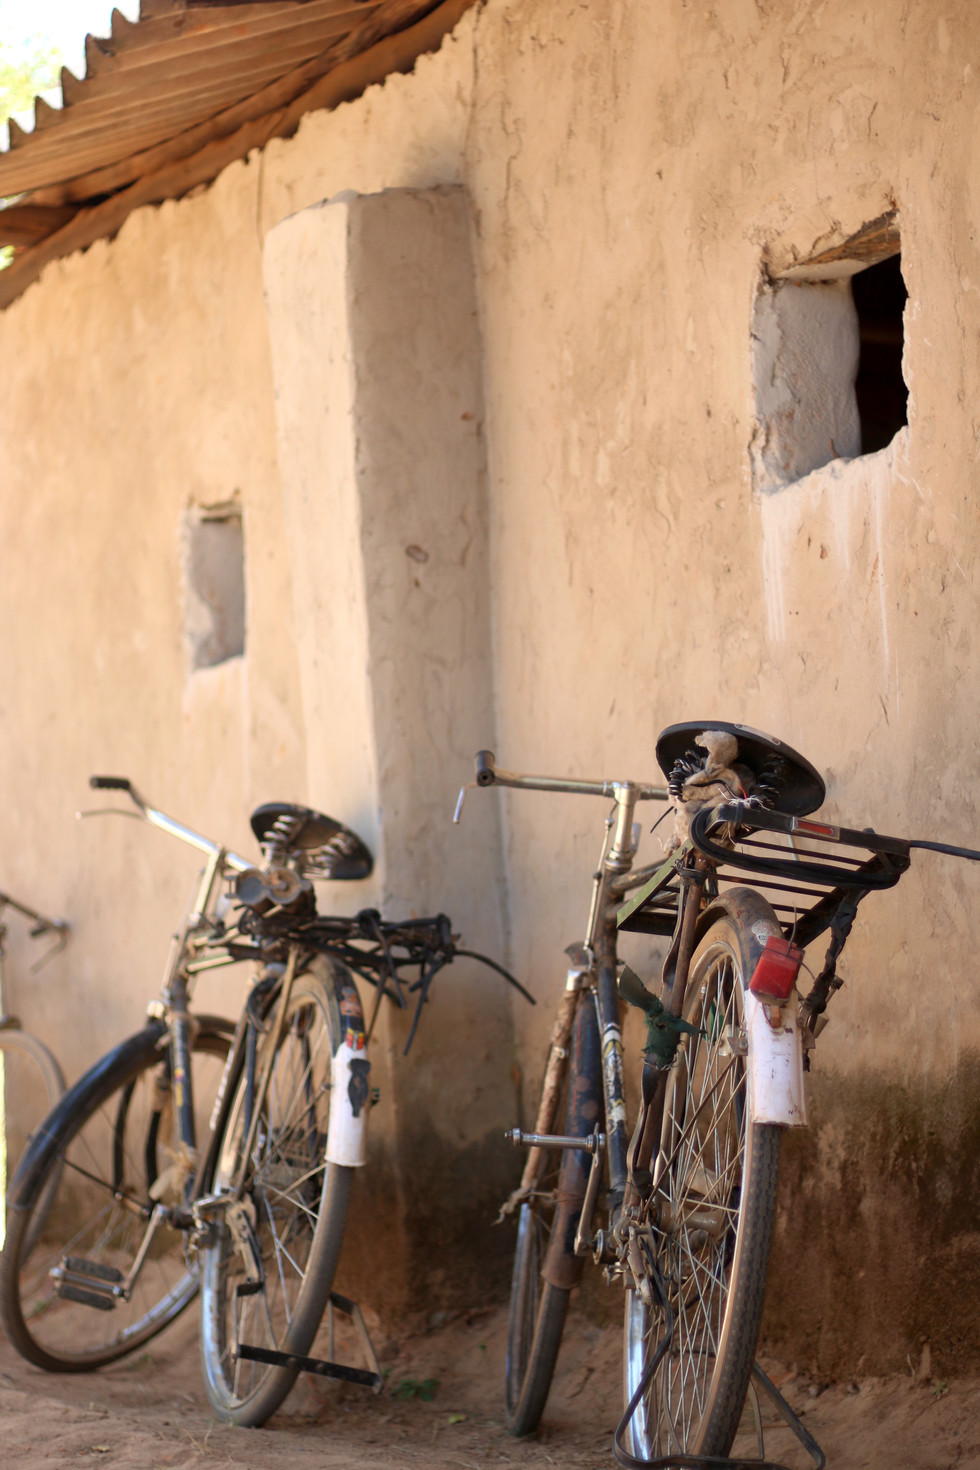 Bicycles... the primary mode of distance travel for most rural pastors